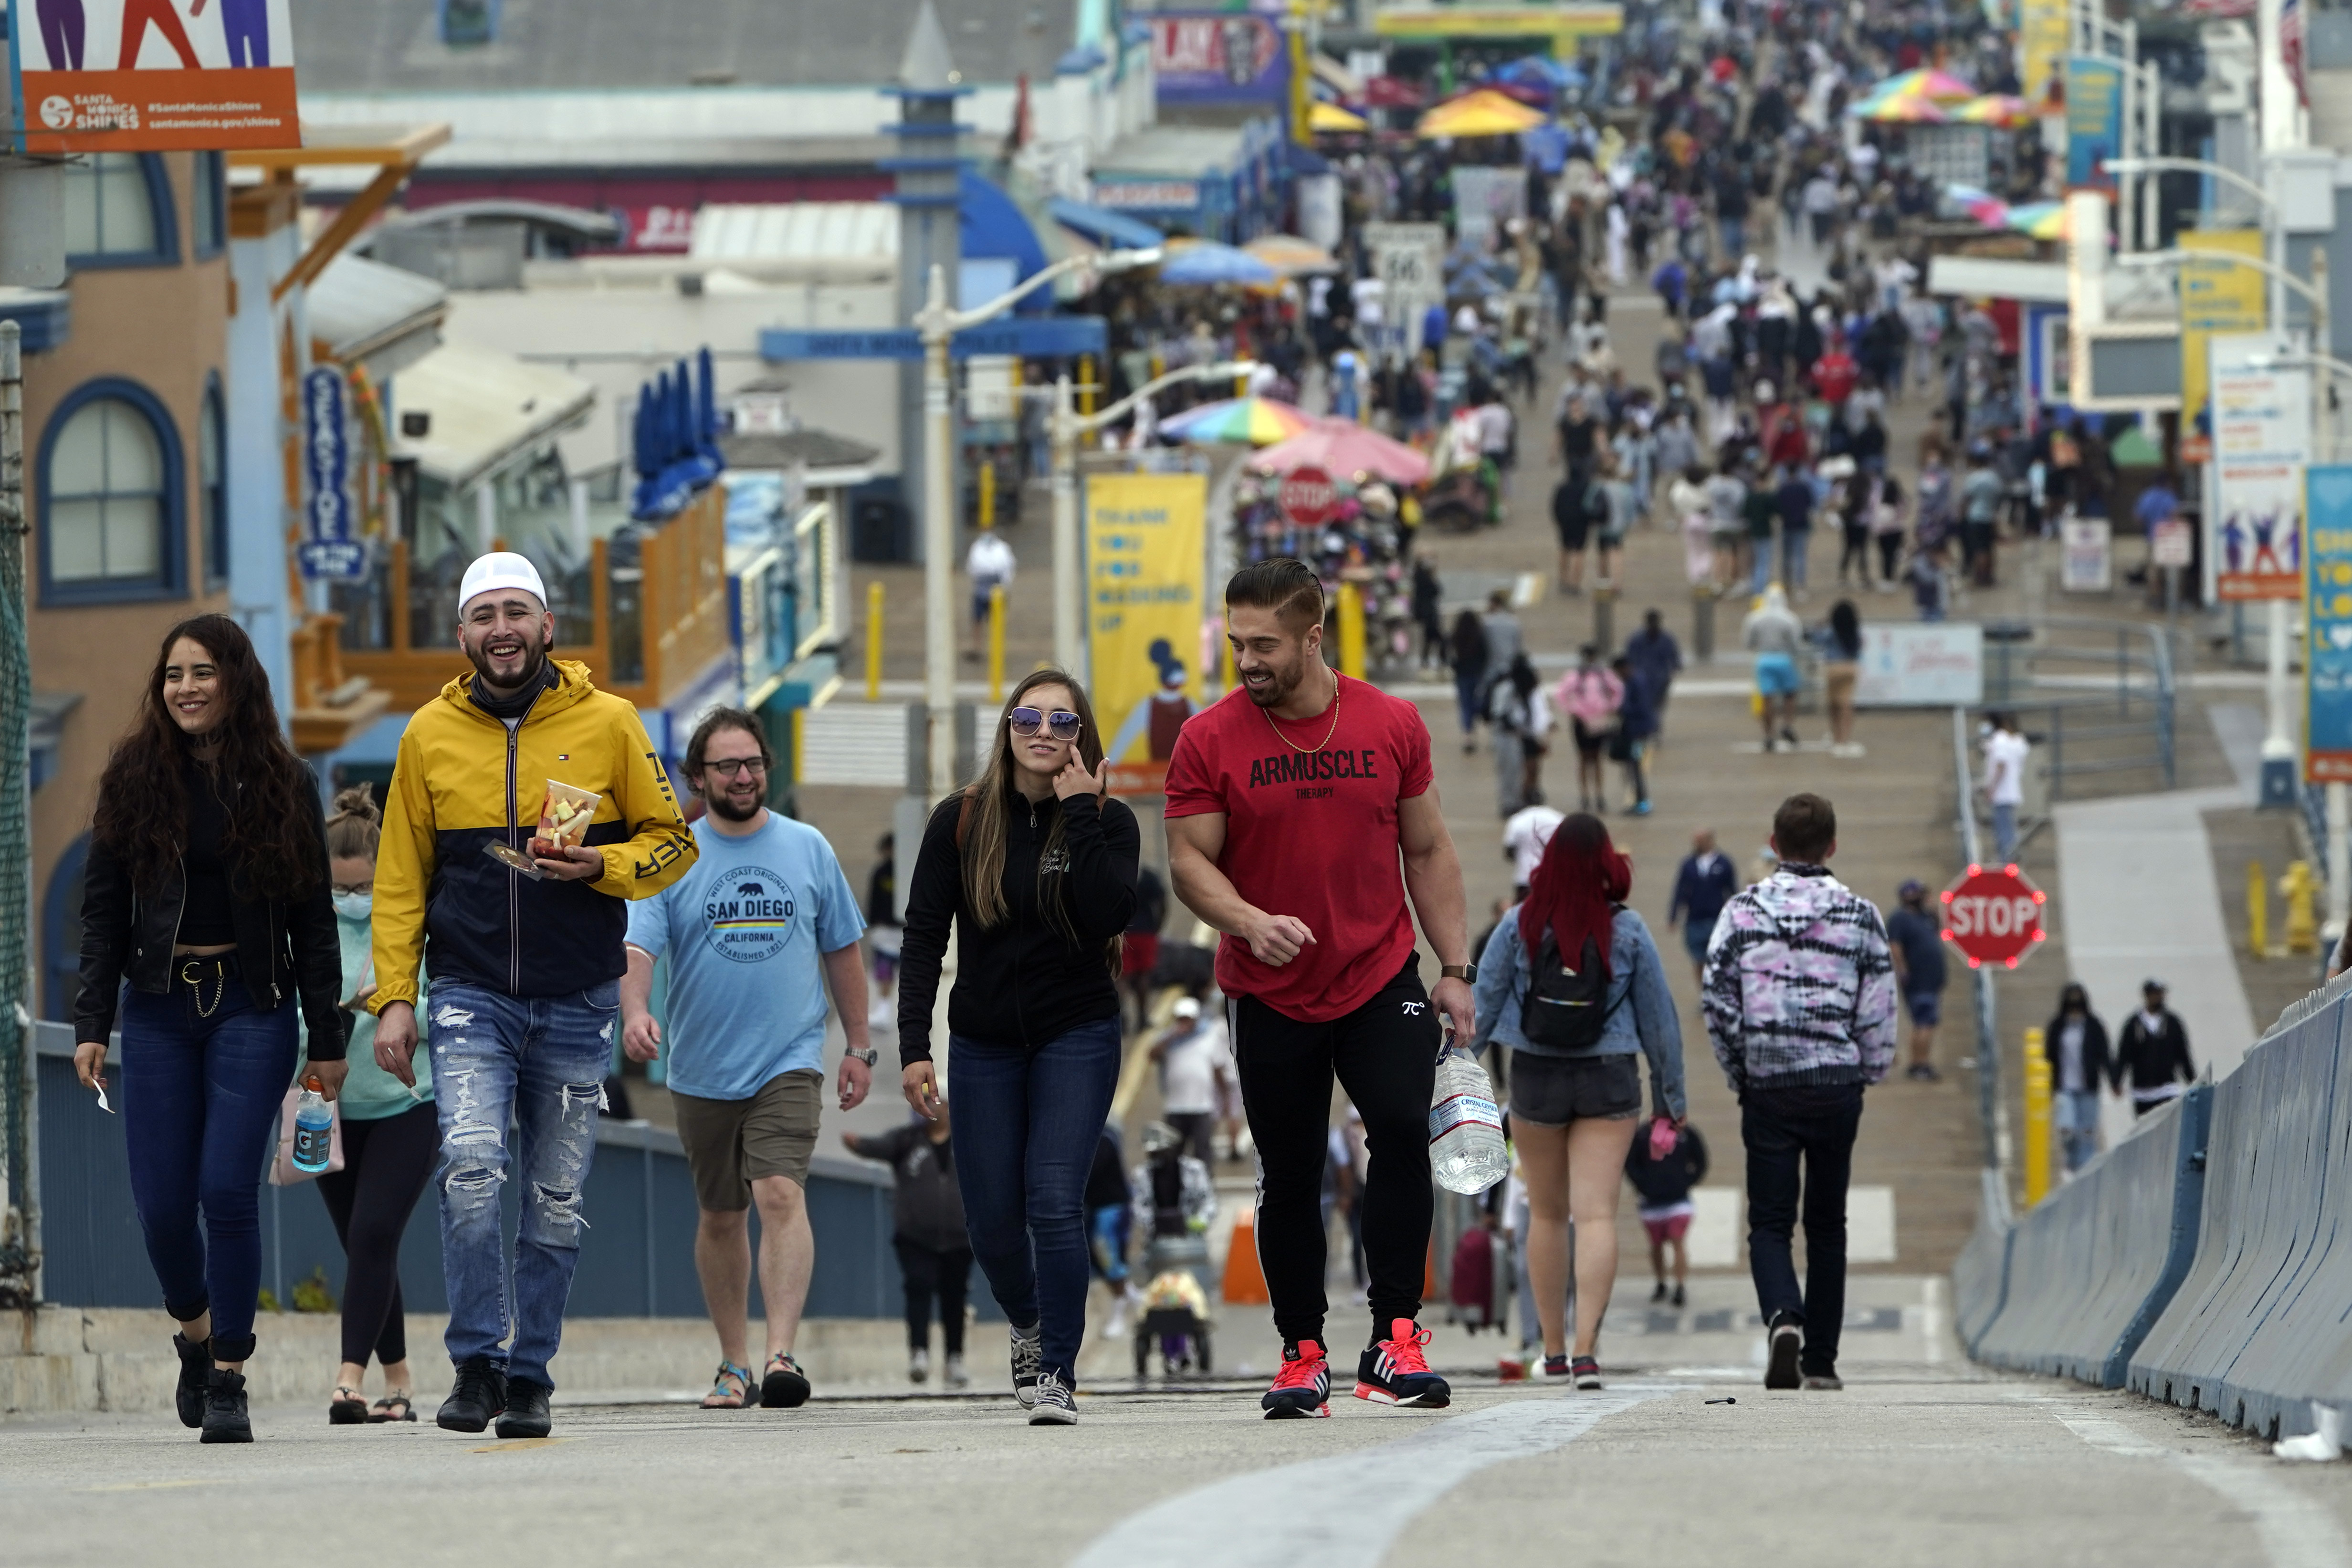 In this May 13, 2021, file photo, May 13, 2021, visitors walk without masks on the pier in Santa Monica, Calif. A number of states immediately embraced new guidelines from the CDC that say fully vaccinated people no longer need to wear masks indoors or out in most situations. But other states - and some businesses _ are taking a wait-and-see attitude.